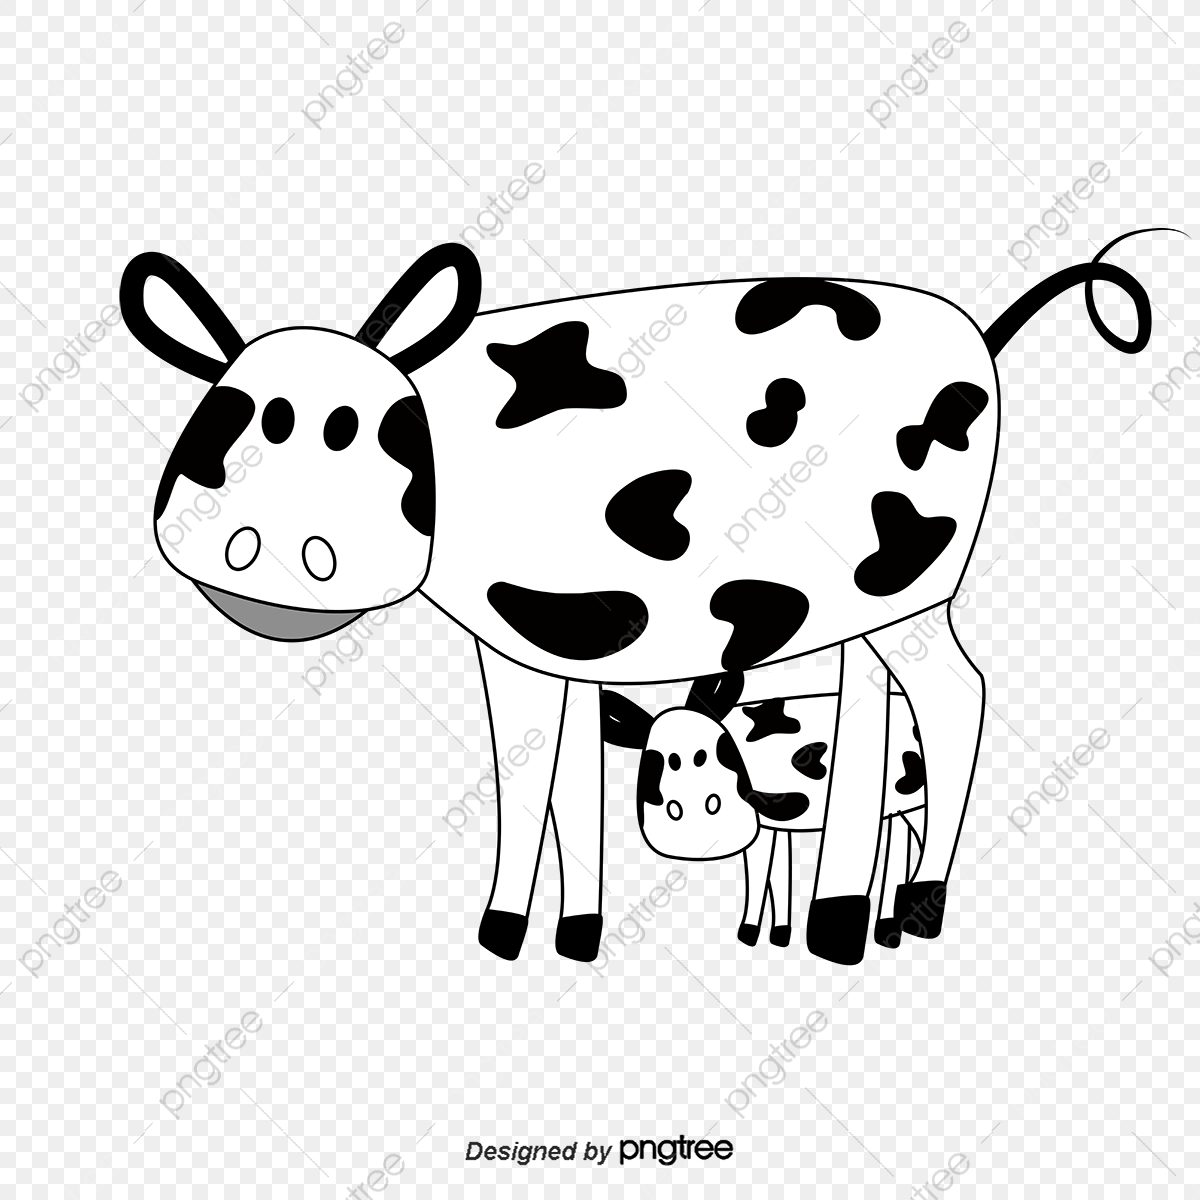 Download Free png Dairy Cow 2, Cow Clipart, Dairy Cow, Animal PNG.